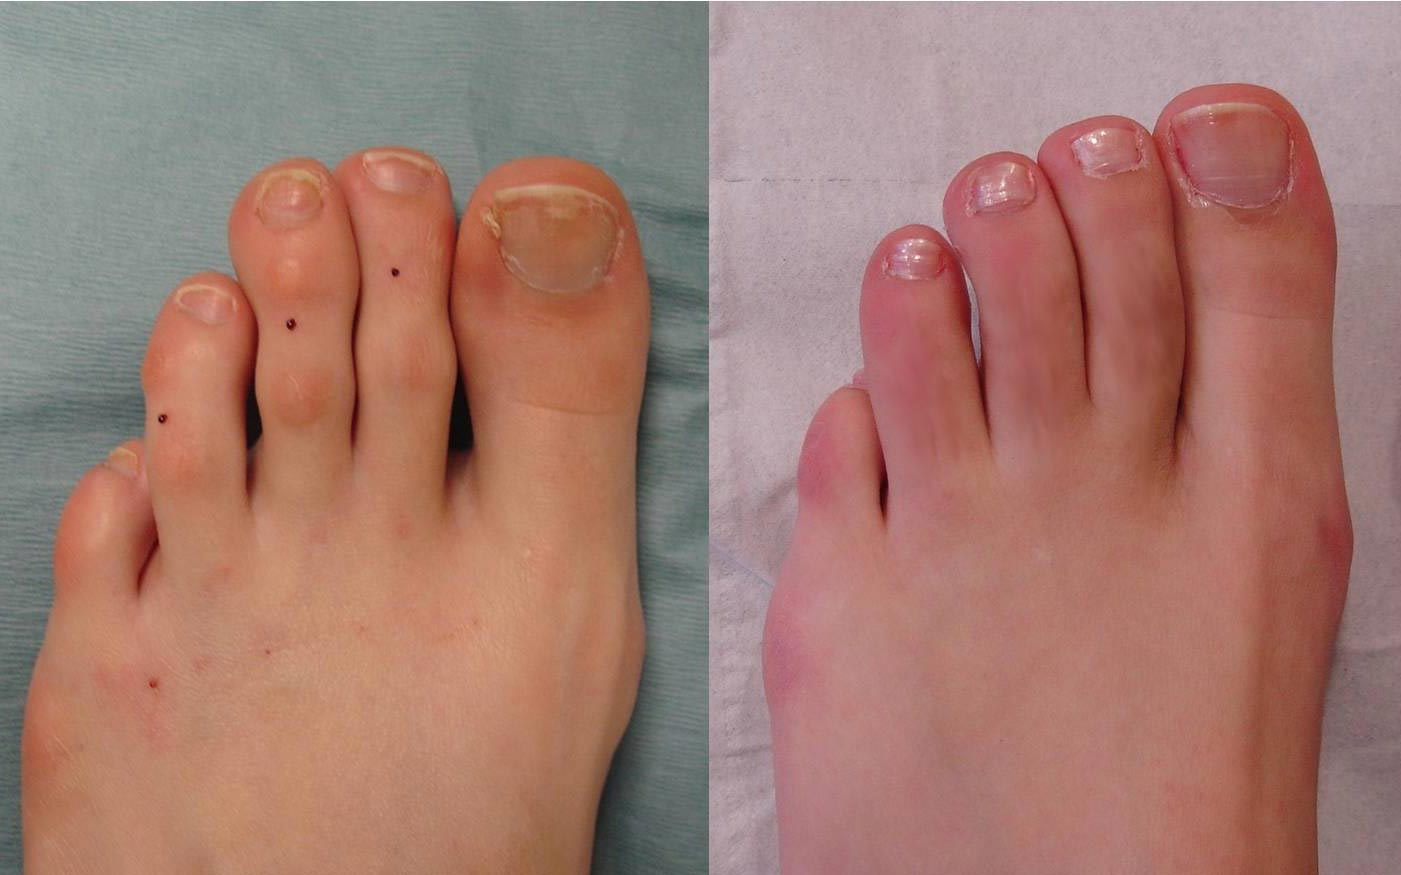 Before and after of toe shortening surgery to the 2nd, 3rd and 4th toes (5-months post-surgery)